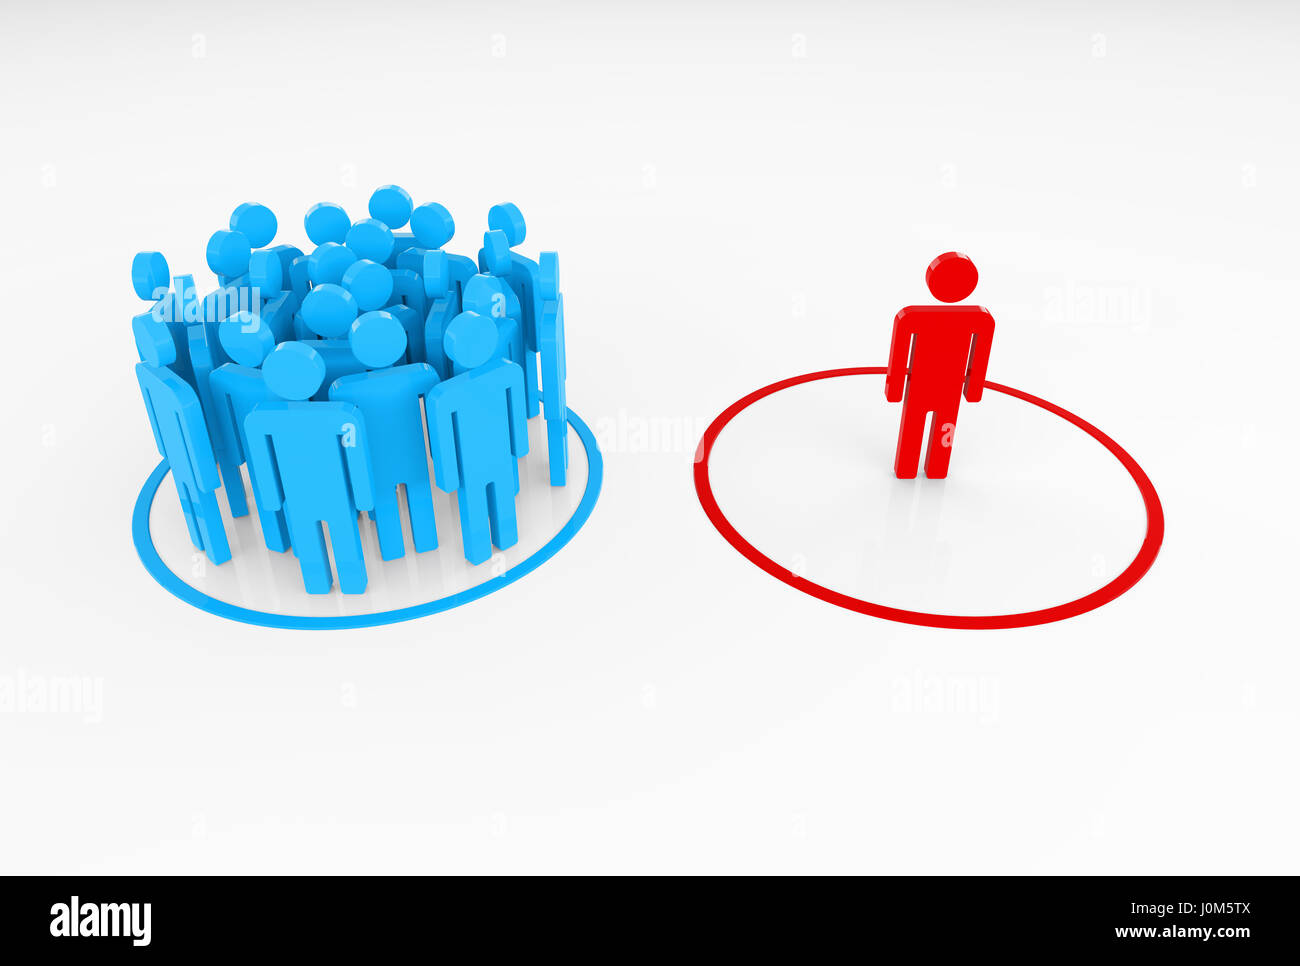 This image shows a person detached from a group. This person can be their leader, or someone who excelled in the - Stock Image